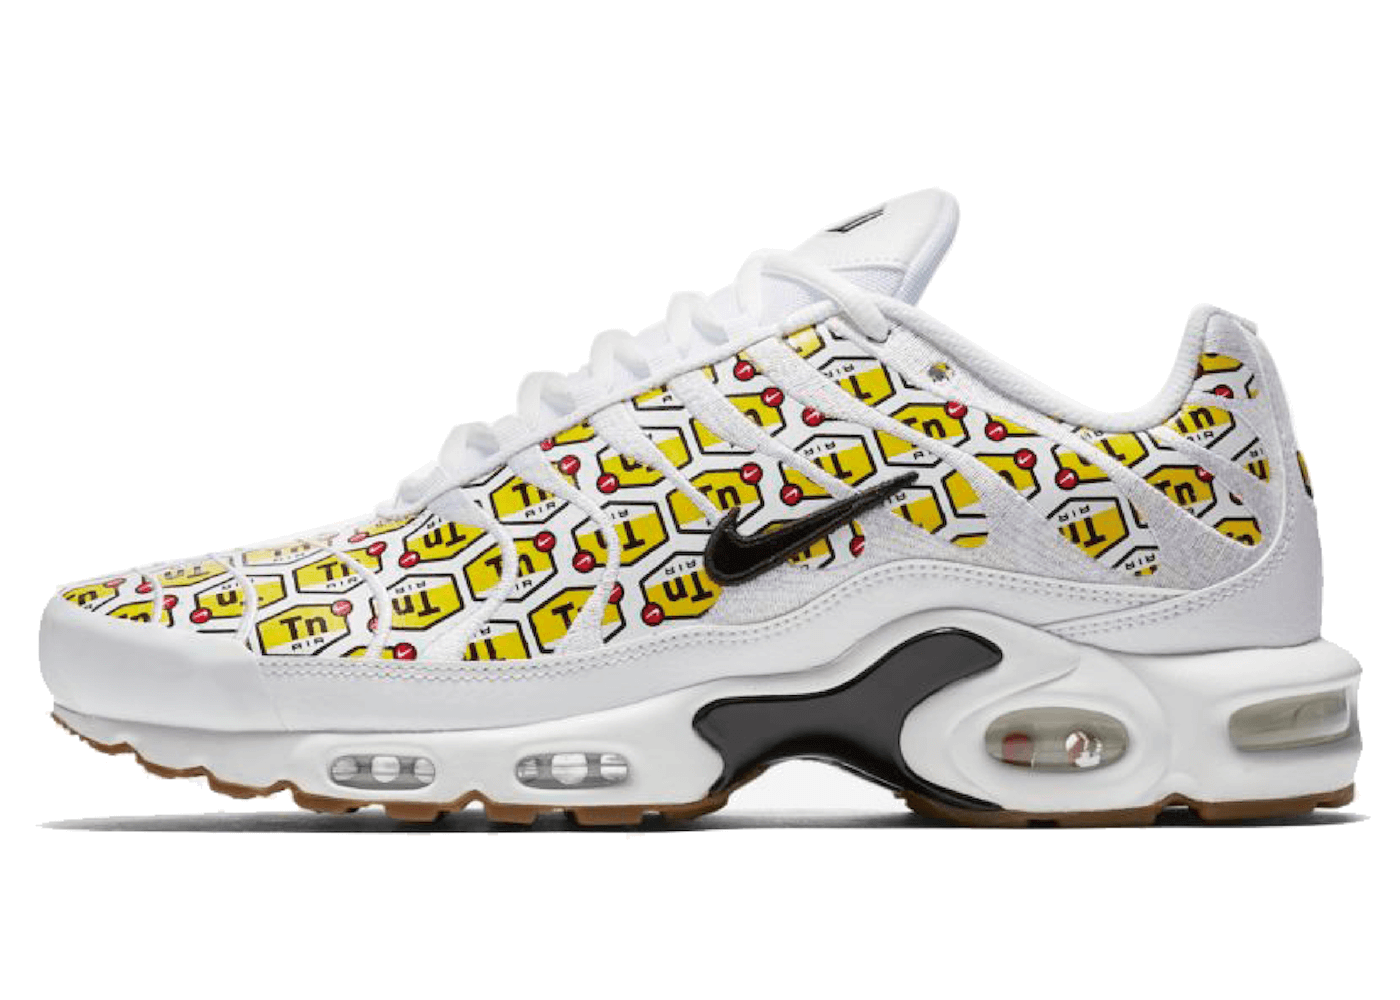 NIKE AIRMAX PLUS HONEYCOMB WHITEの写真